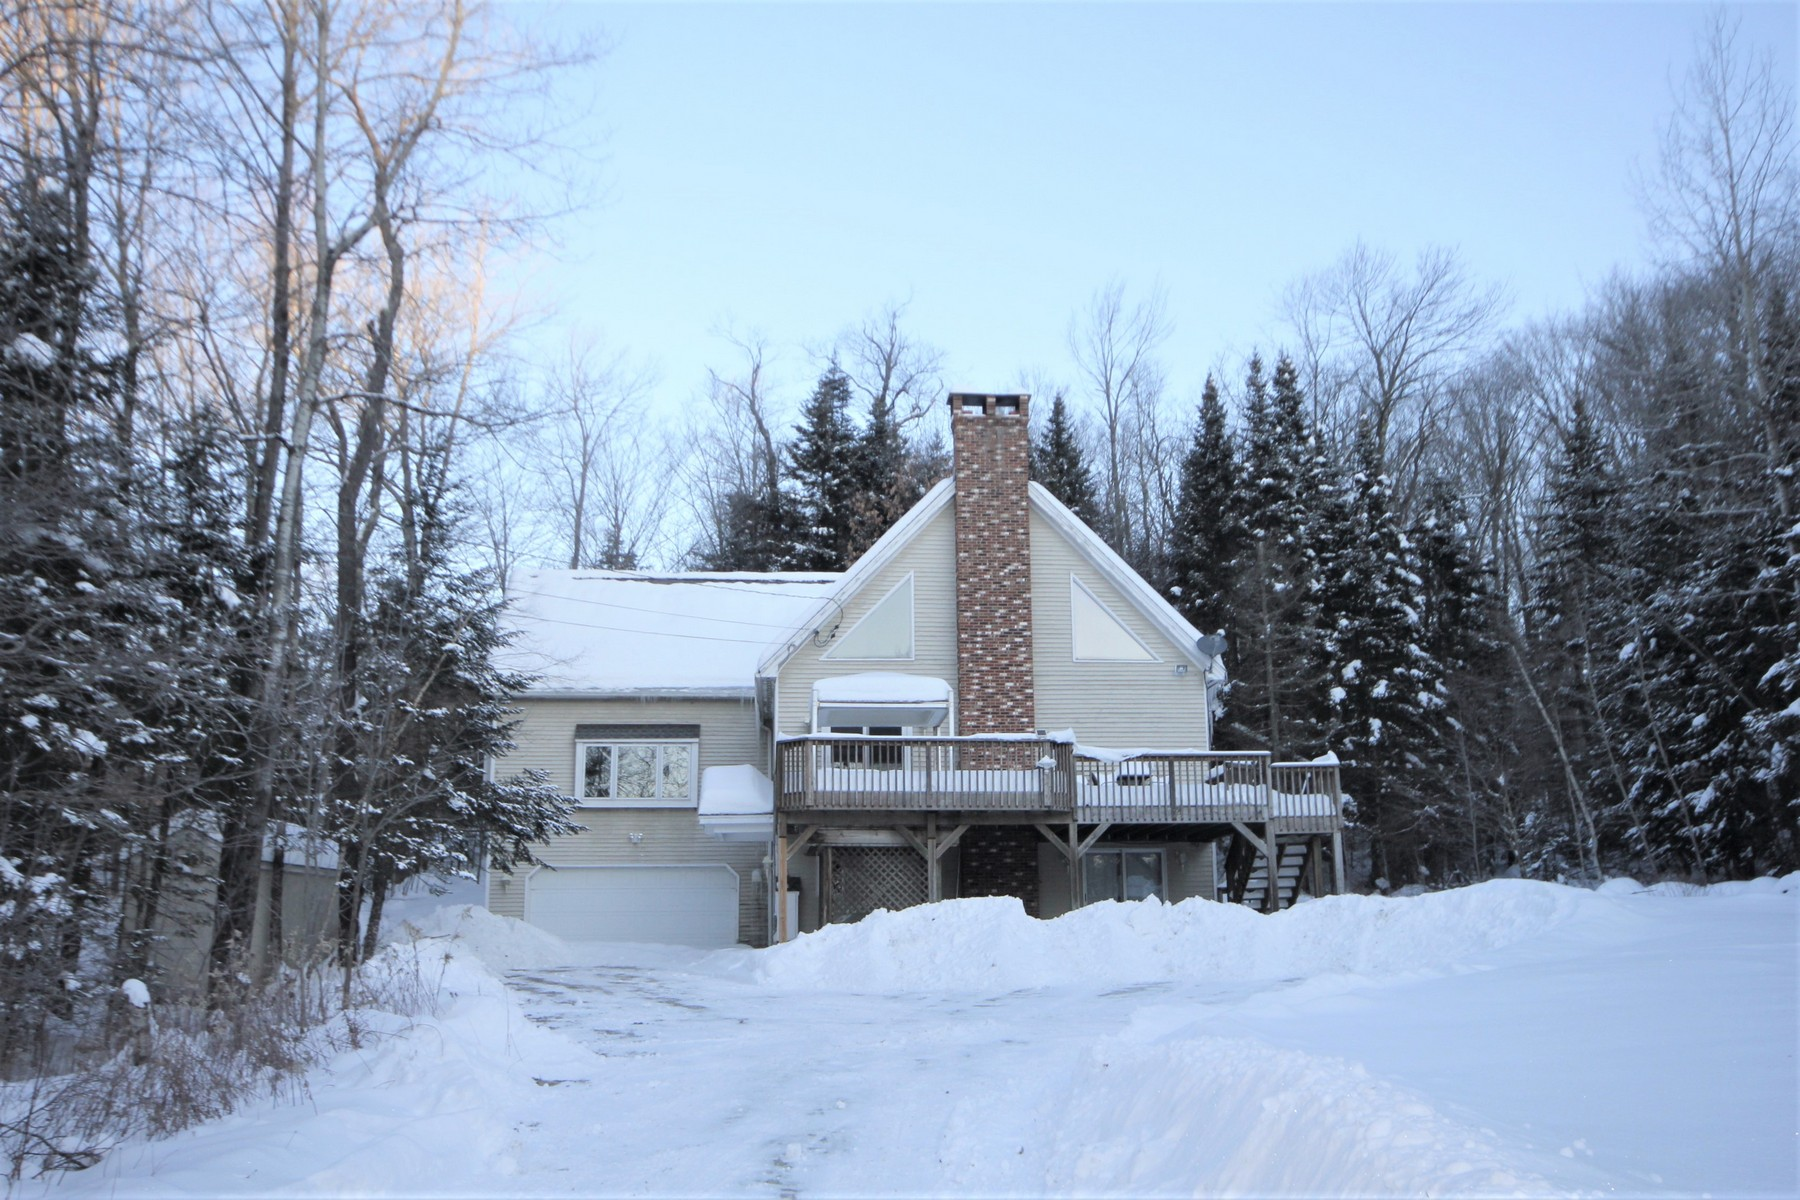 Single Family Homes for Sale at Direct Snowmobile Access 24 Blue Brook Rd Dover, Vermont 05356 United States